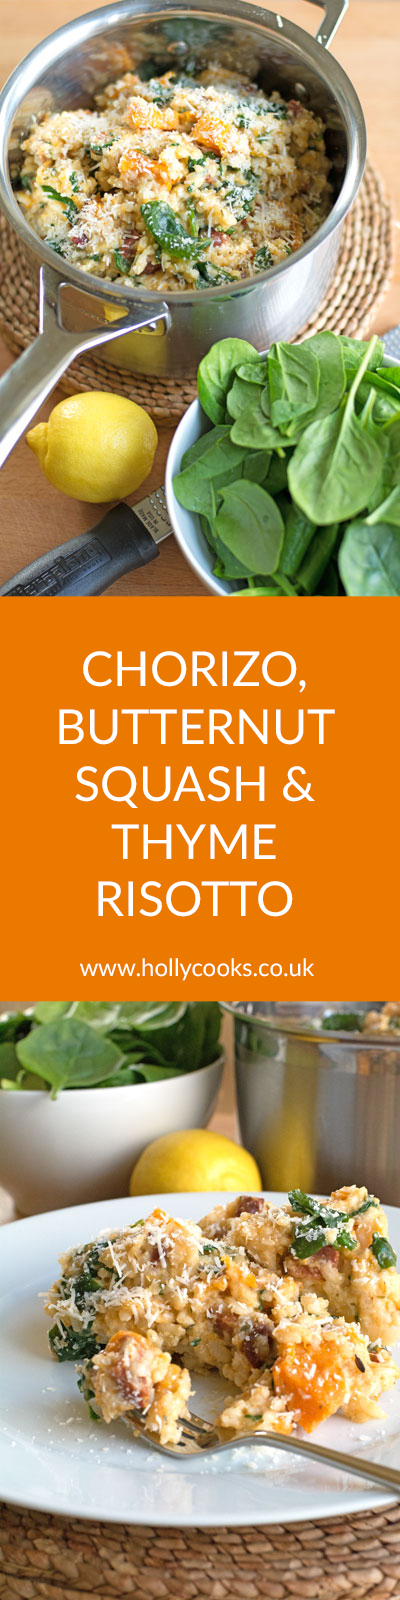 Holly-cooks-chorizo-butternut-squash-and-thyme-risotto-pinterest